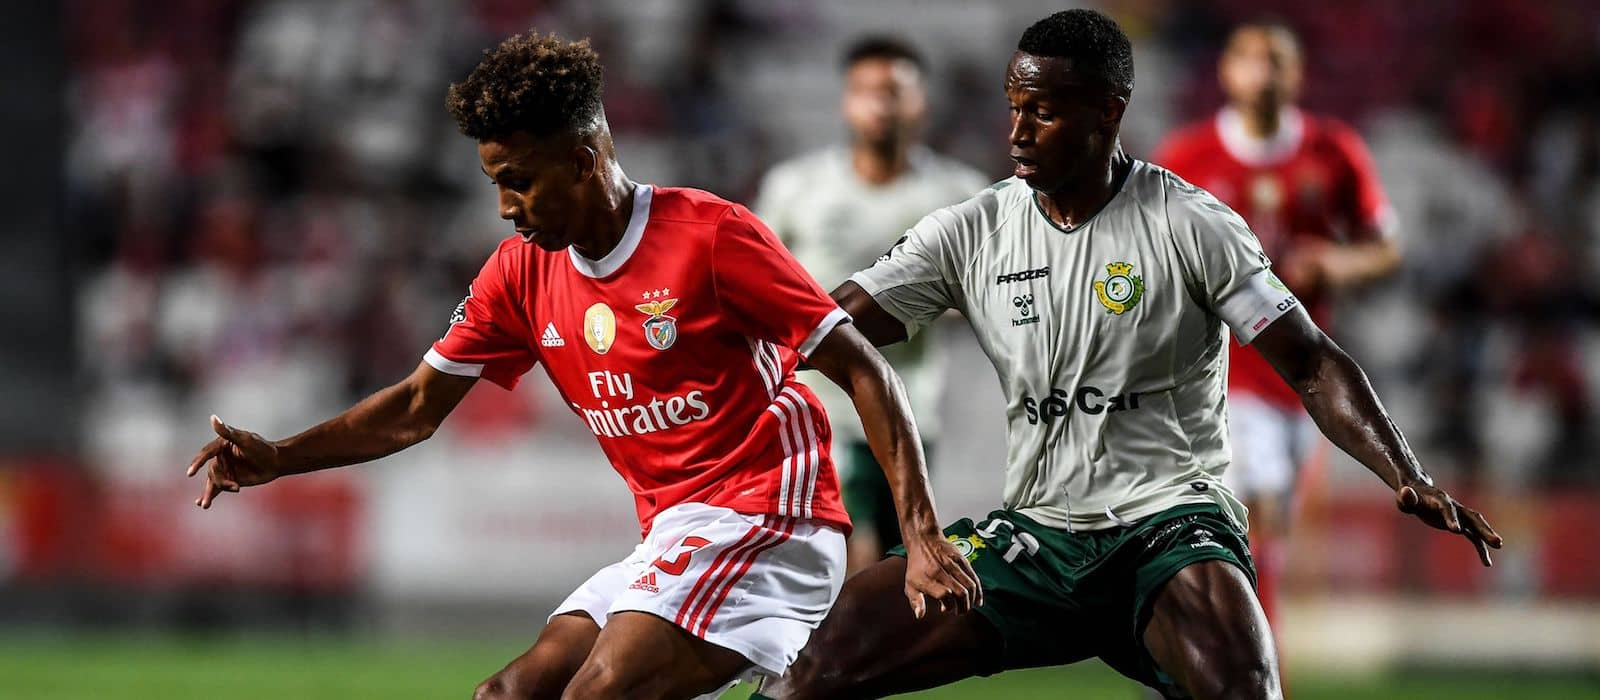 Manchester United interested in available Benfica star Gedson Fernandes